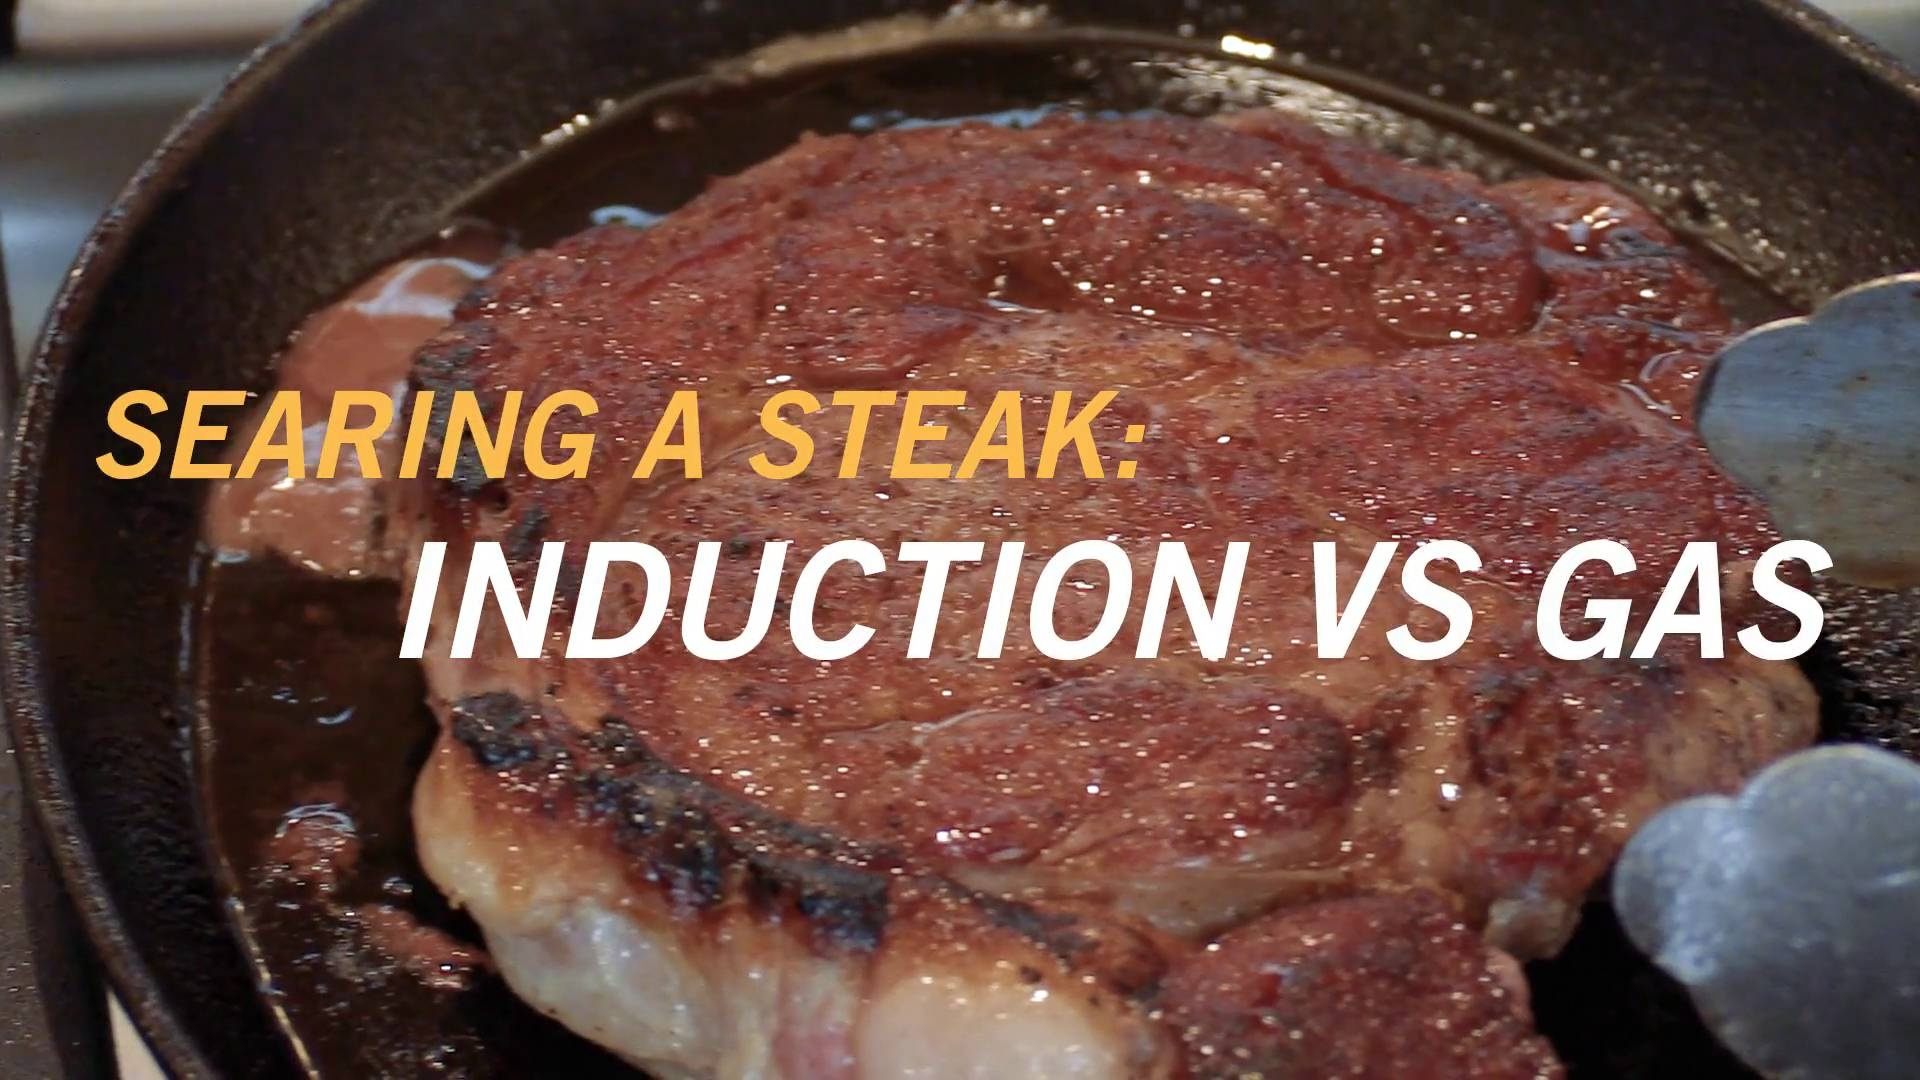 Wistia video thumbnail - Induction vs Gas: Which Sears a Steak Better?